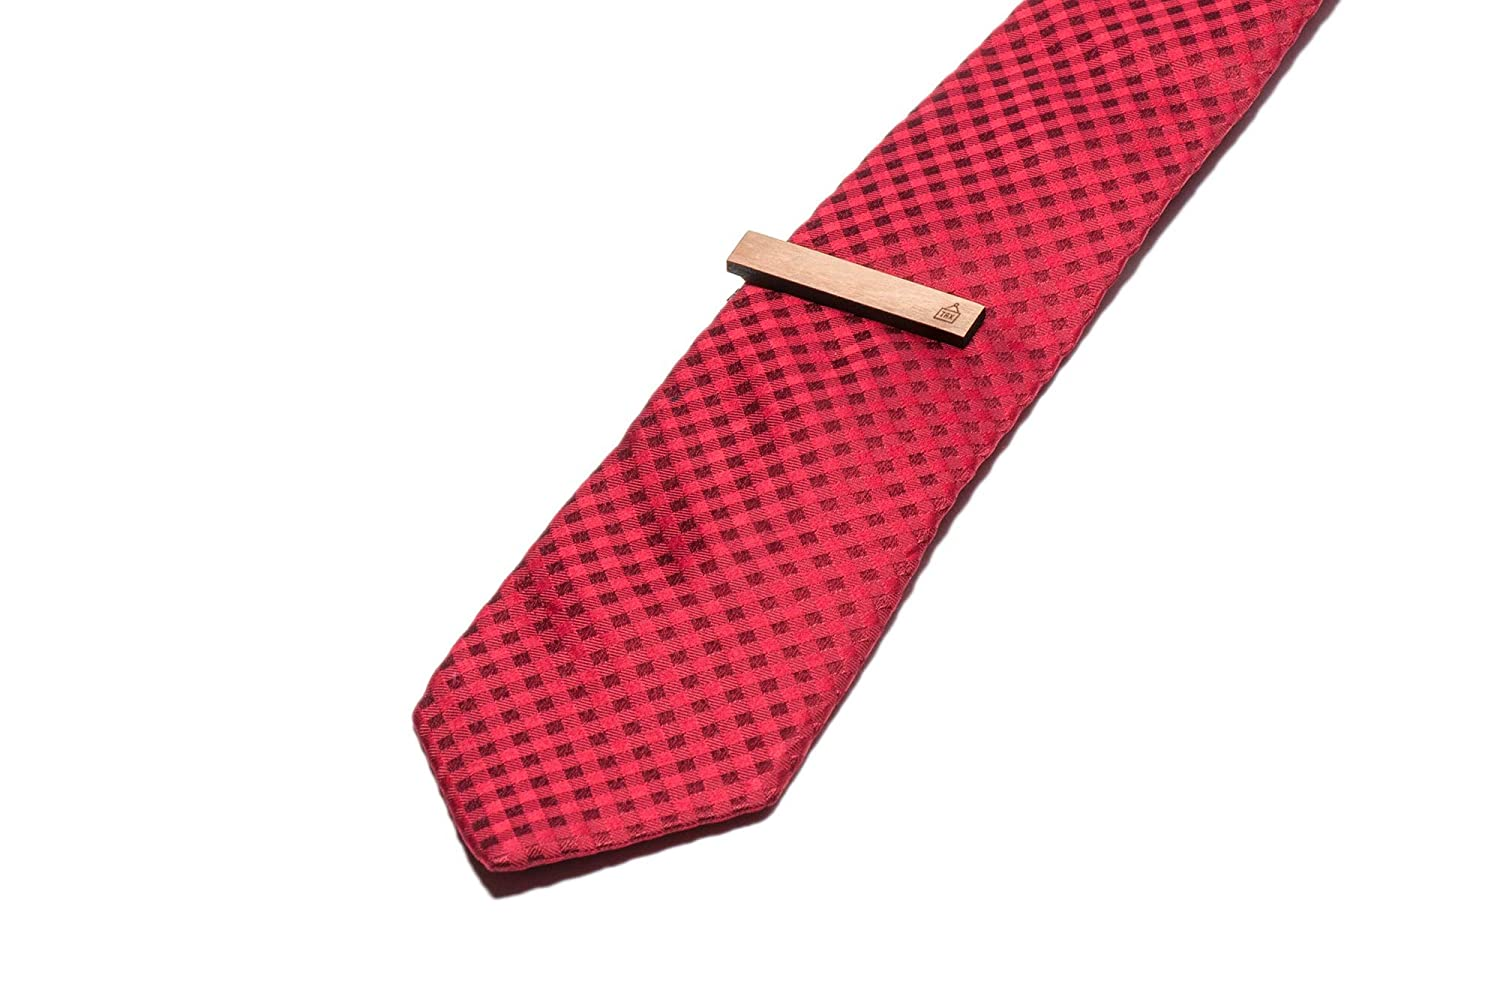 Wooden Accessories Company Wooden Tie Clips with Laser Engraved Tax Signboard Design Cherry Wood Tie Bar Engraved in The USA